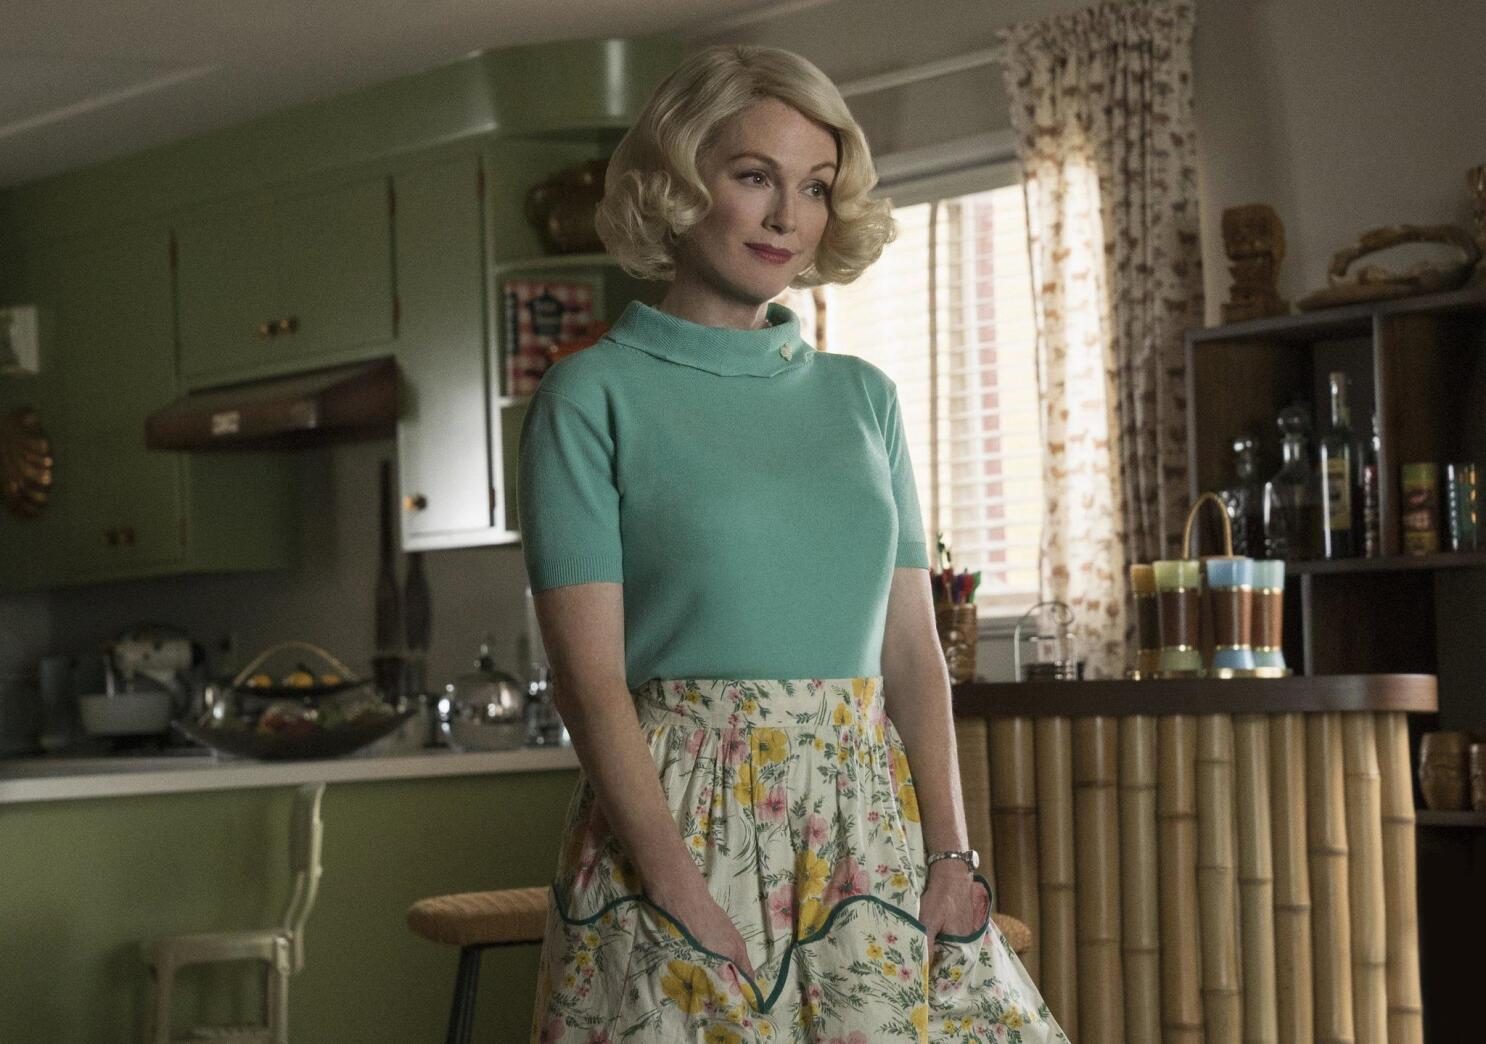 4997e8e67f Suburbicon' review: Tone-deaf misfire from Clooney, Coens - The San ...